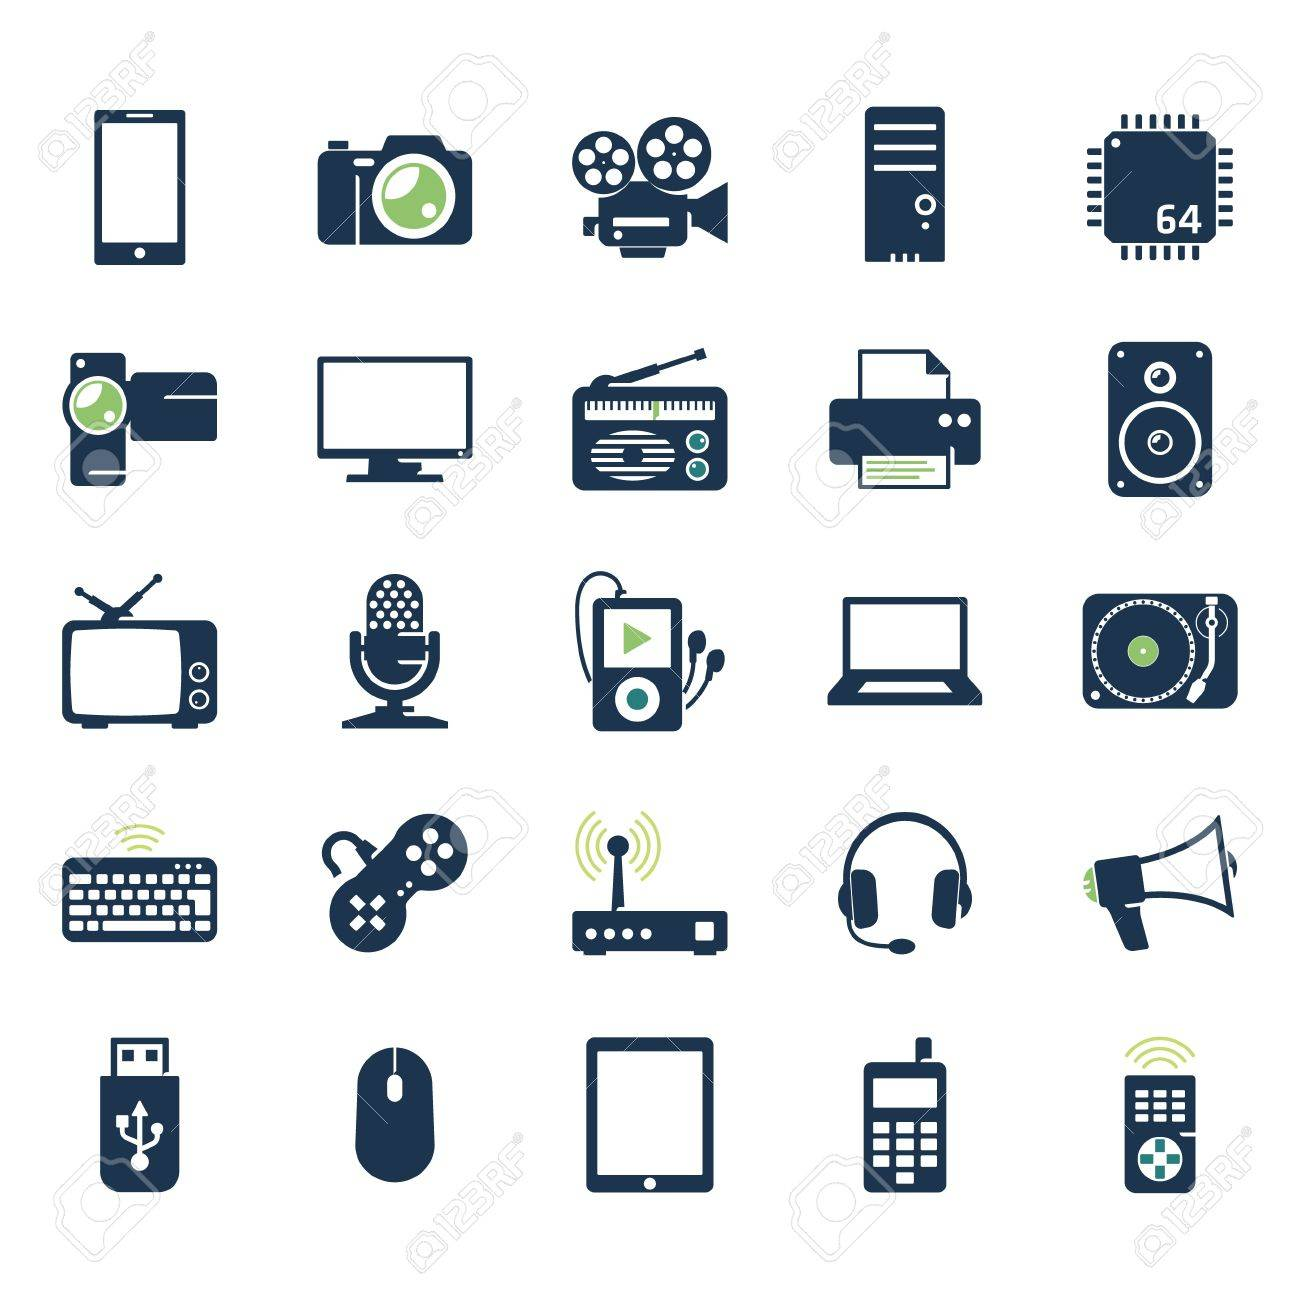 Electronics and gadgets icons set - 20654145